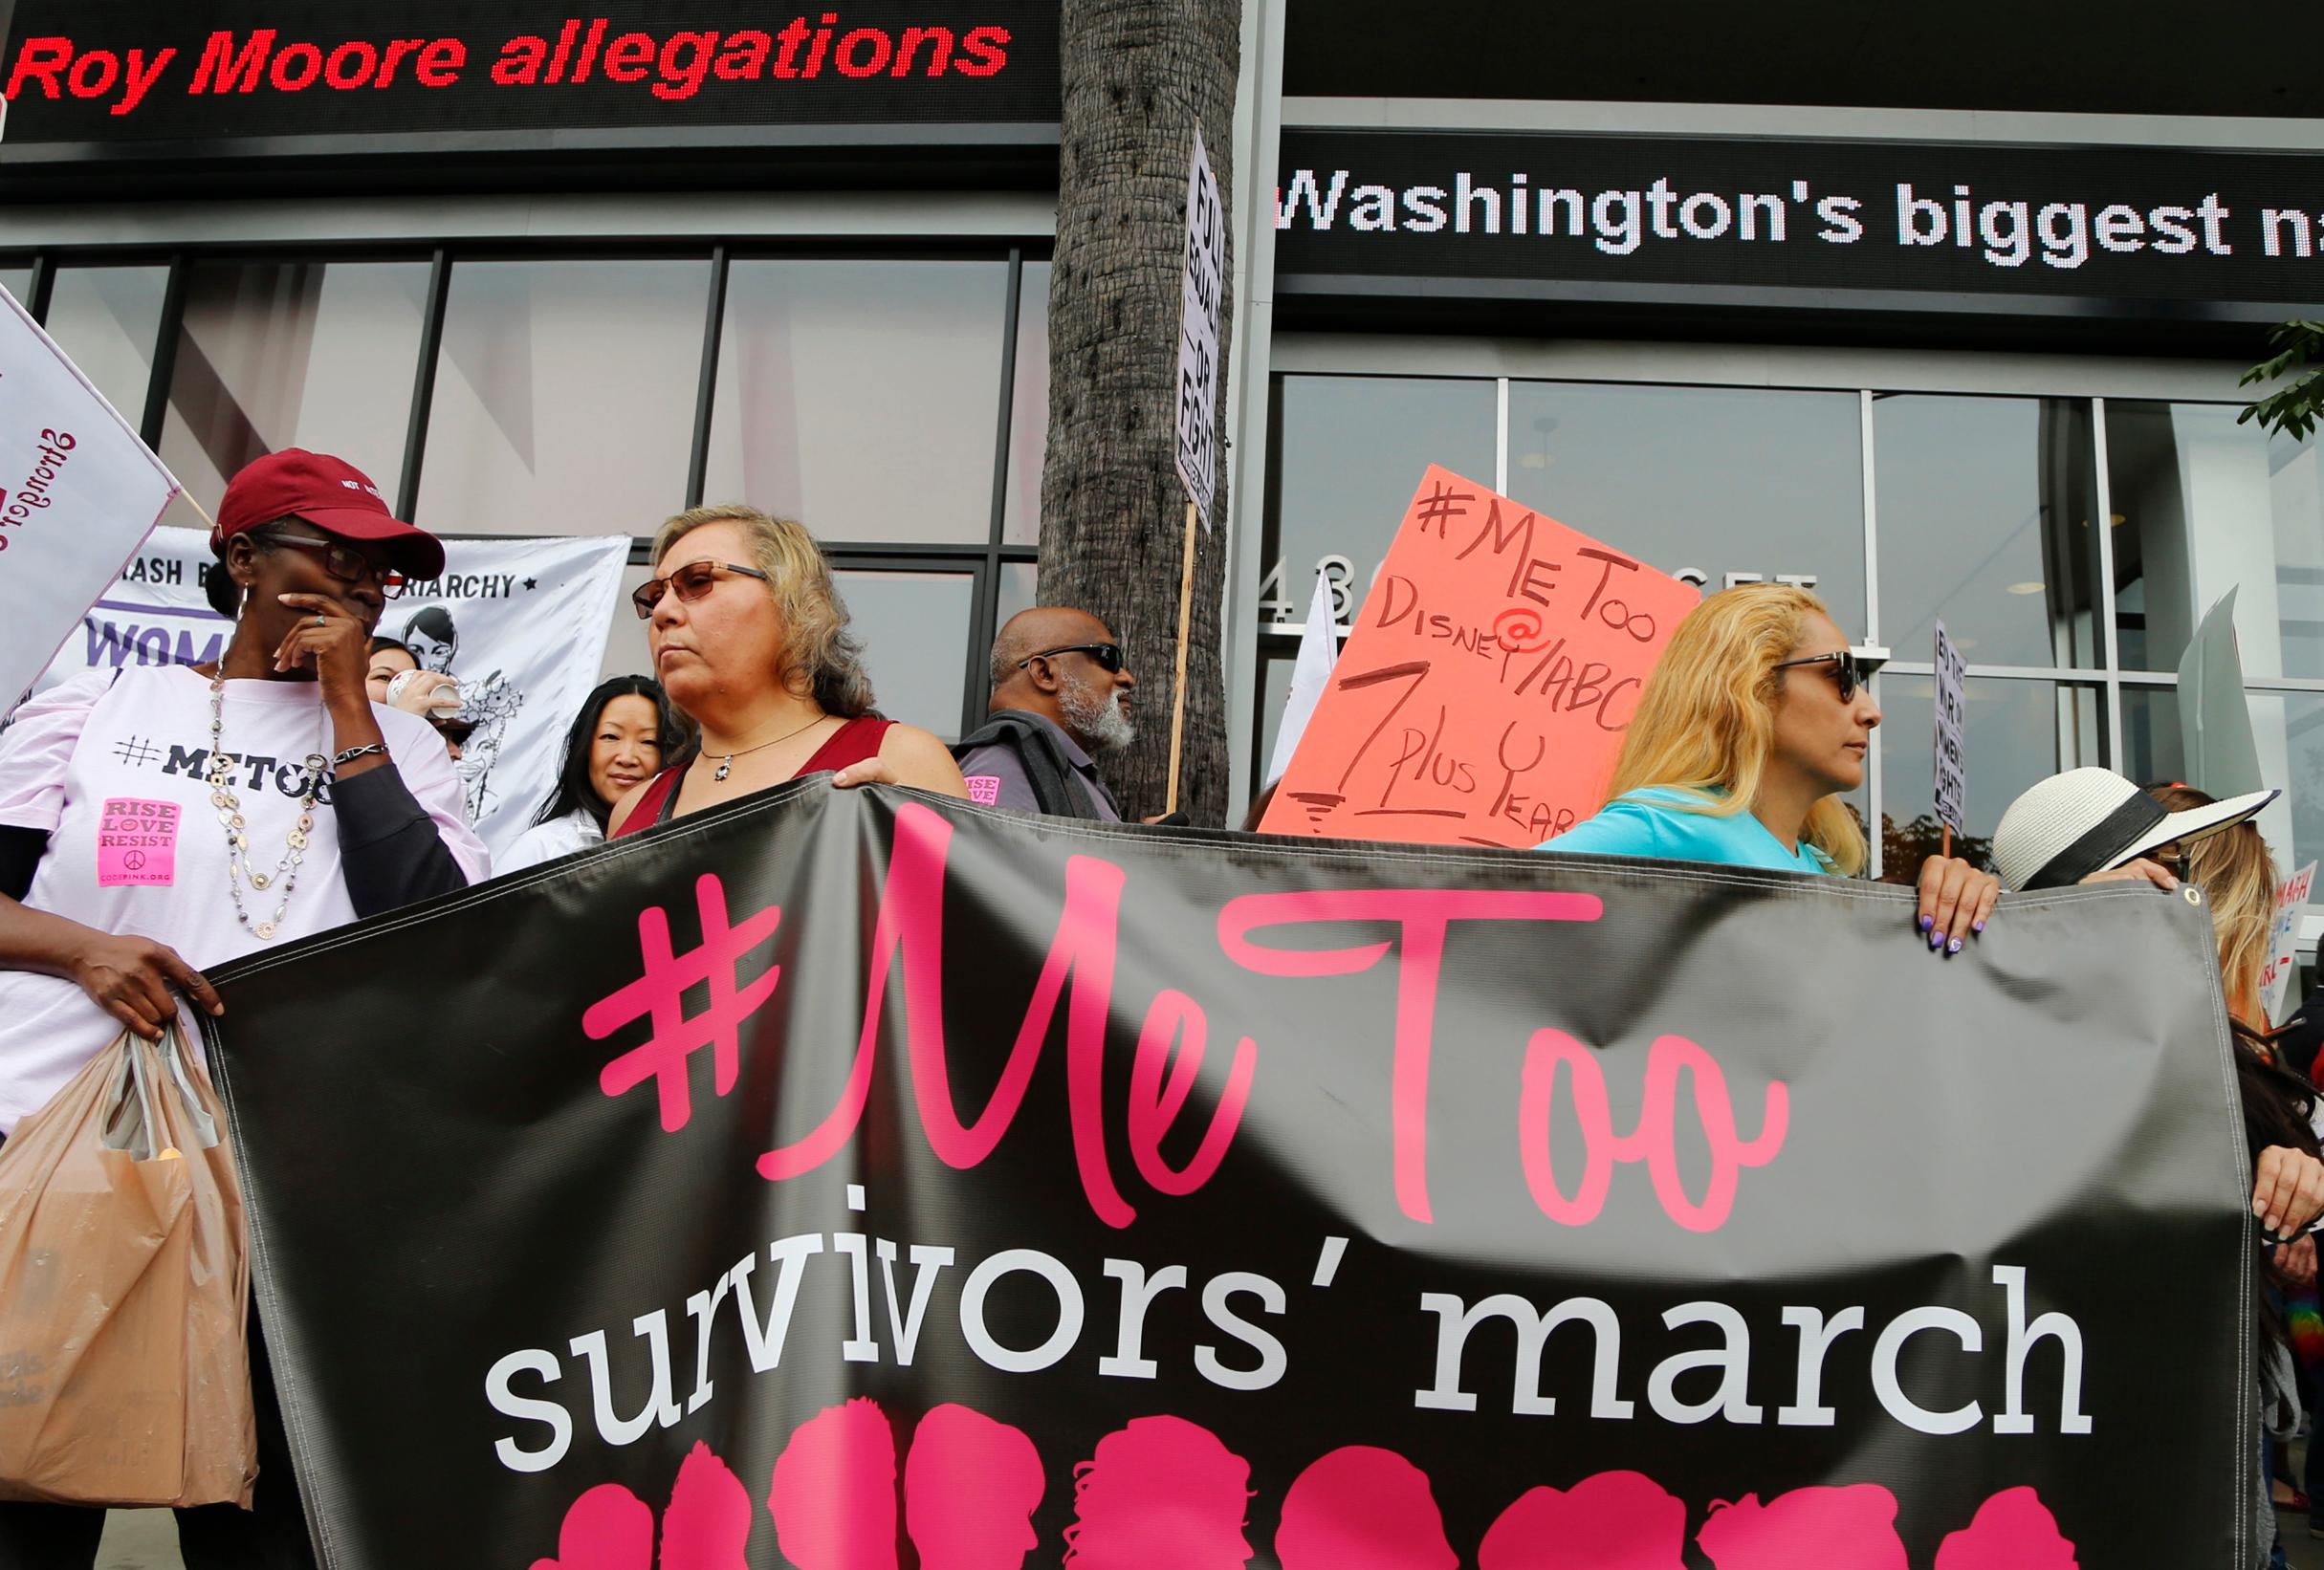 Participants rally outside the Cable News Network's Hollywood studios on Sunset Boulevard to take a stand against sexual assault and harassment for the #MeToo March in the Hollywood district of Los Angeles on Sunday, Nov. 12, 2017. (AP Photo/Damian Dovarganes)